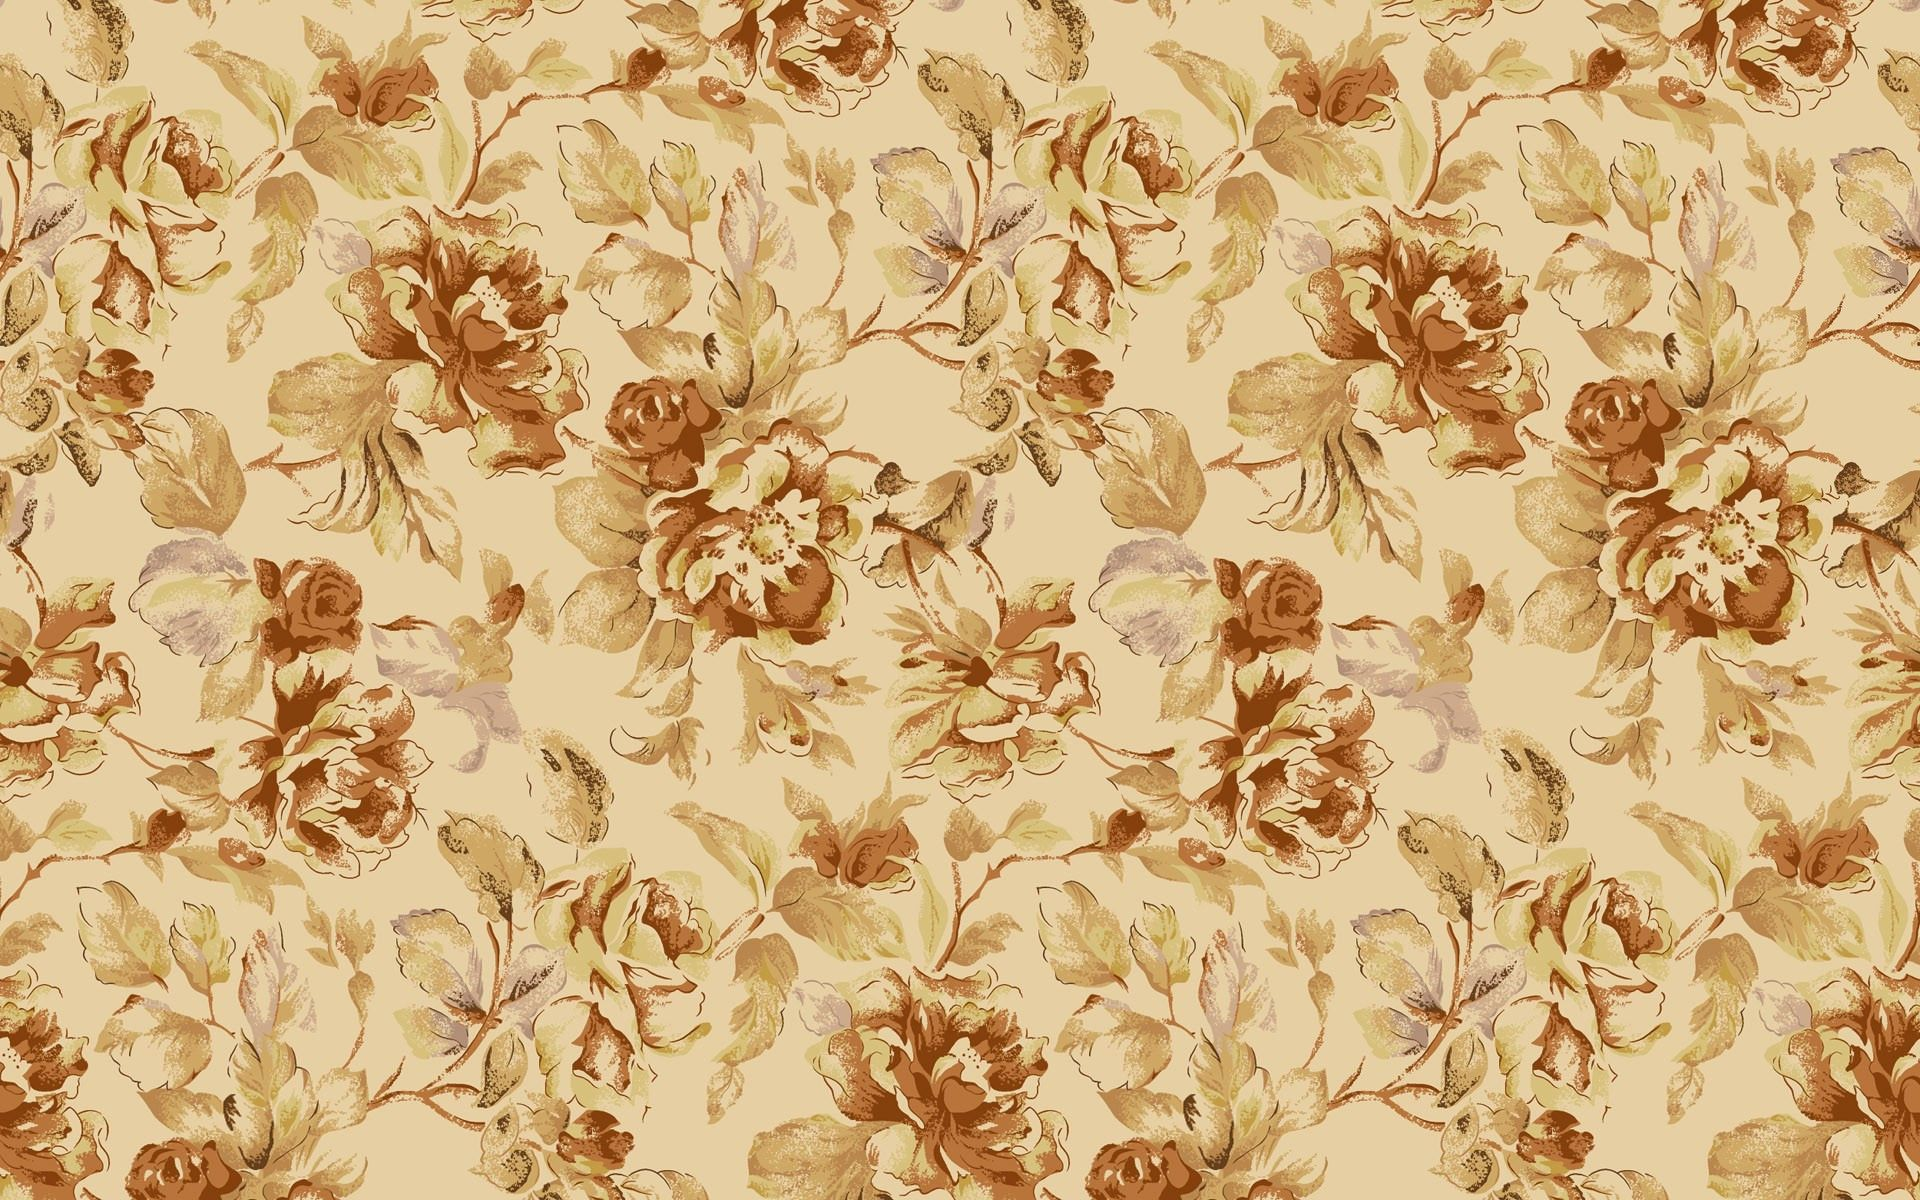 Check The Best Collection Of Vintage Floral Backgrounds For Desktop Lapt Vintage Floral Backgrounds Vintage Floral Pattern Wallpaper Vintage Flowers Wallpaper